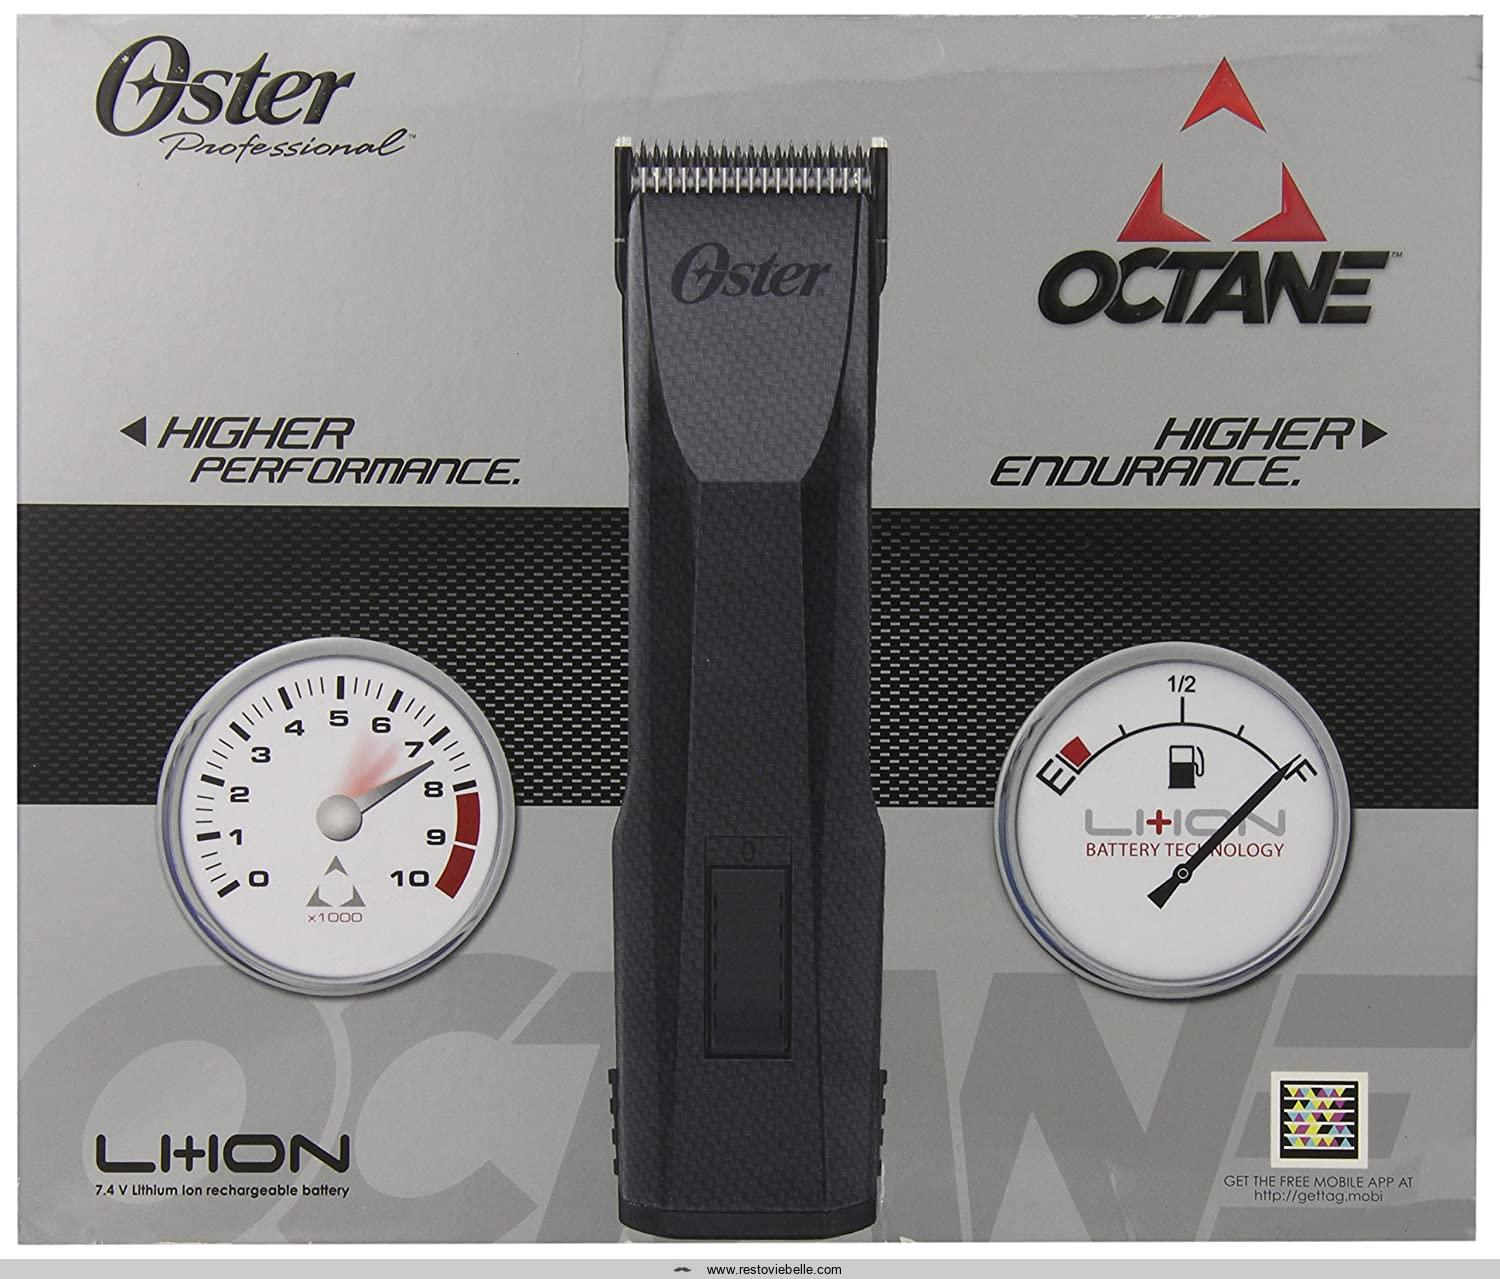 Oster Professional 76550-00 Octane Cordless